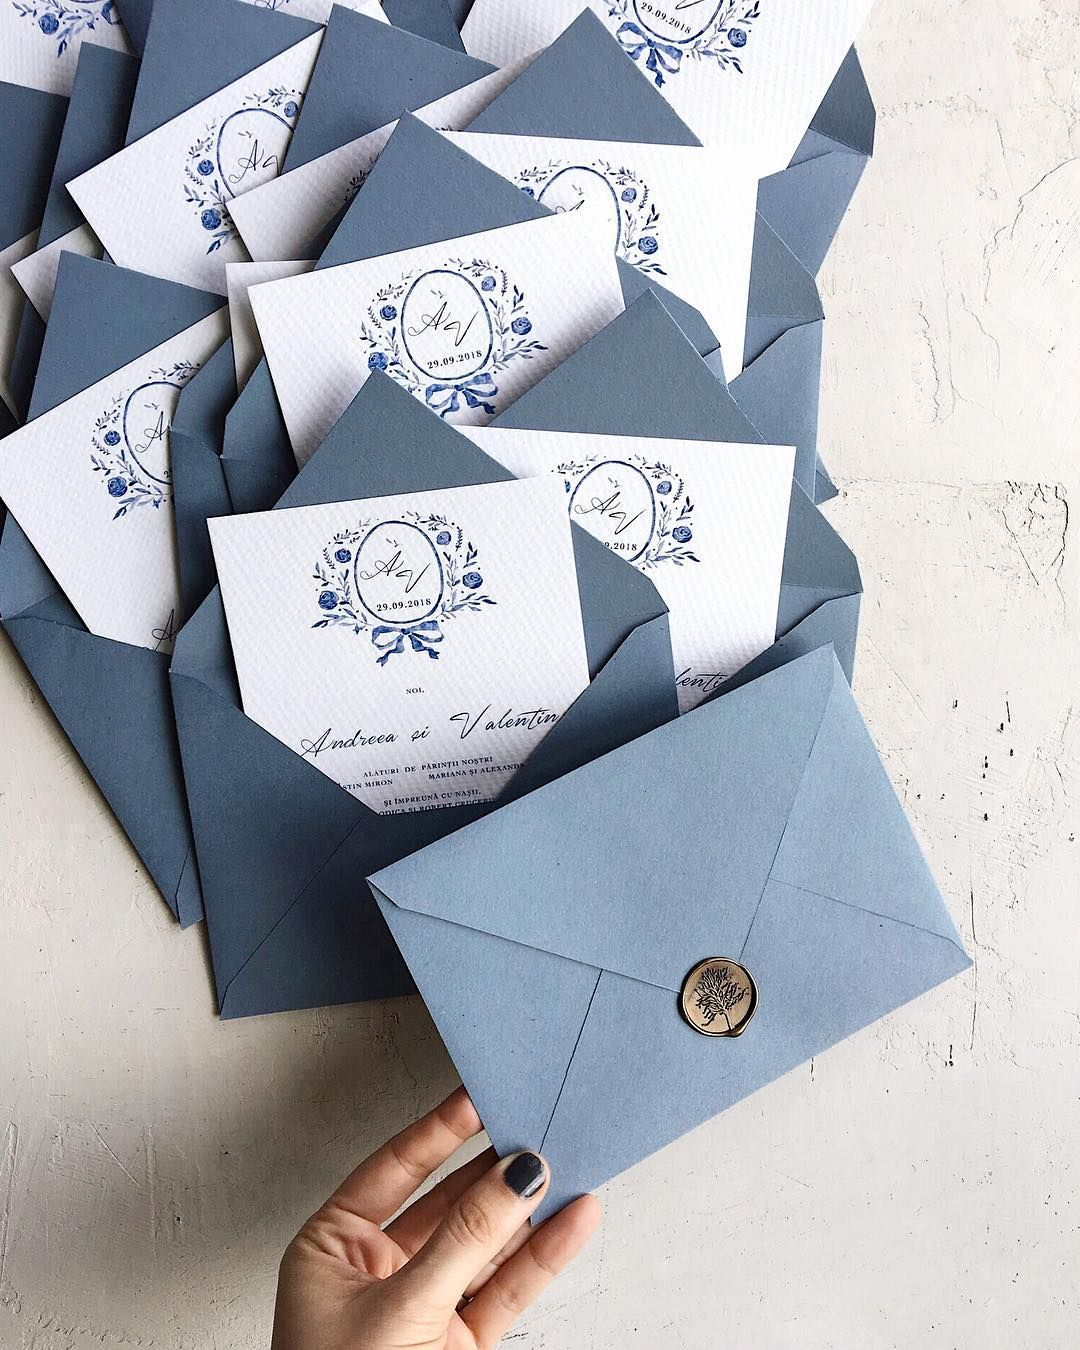 Blue Watercolor Wedding Invitation With Blue Handmade Envelopes And And Bronze Fun Wedding Invitations Blue Wedding Invitations Watercolor Wedding Invitations